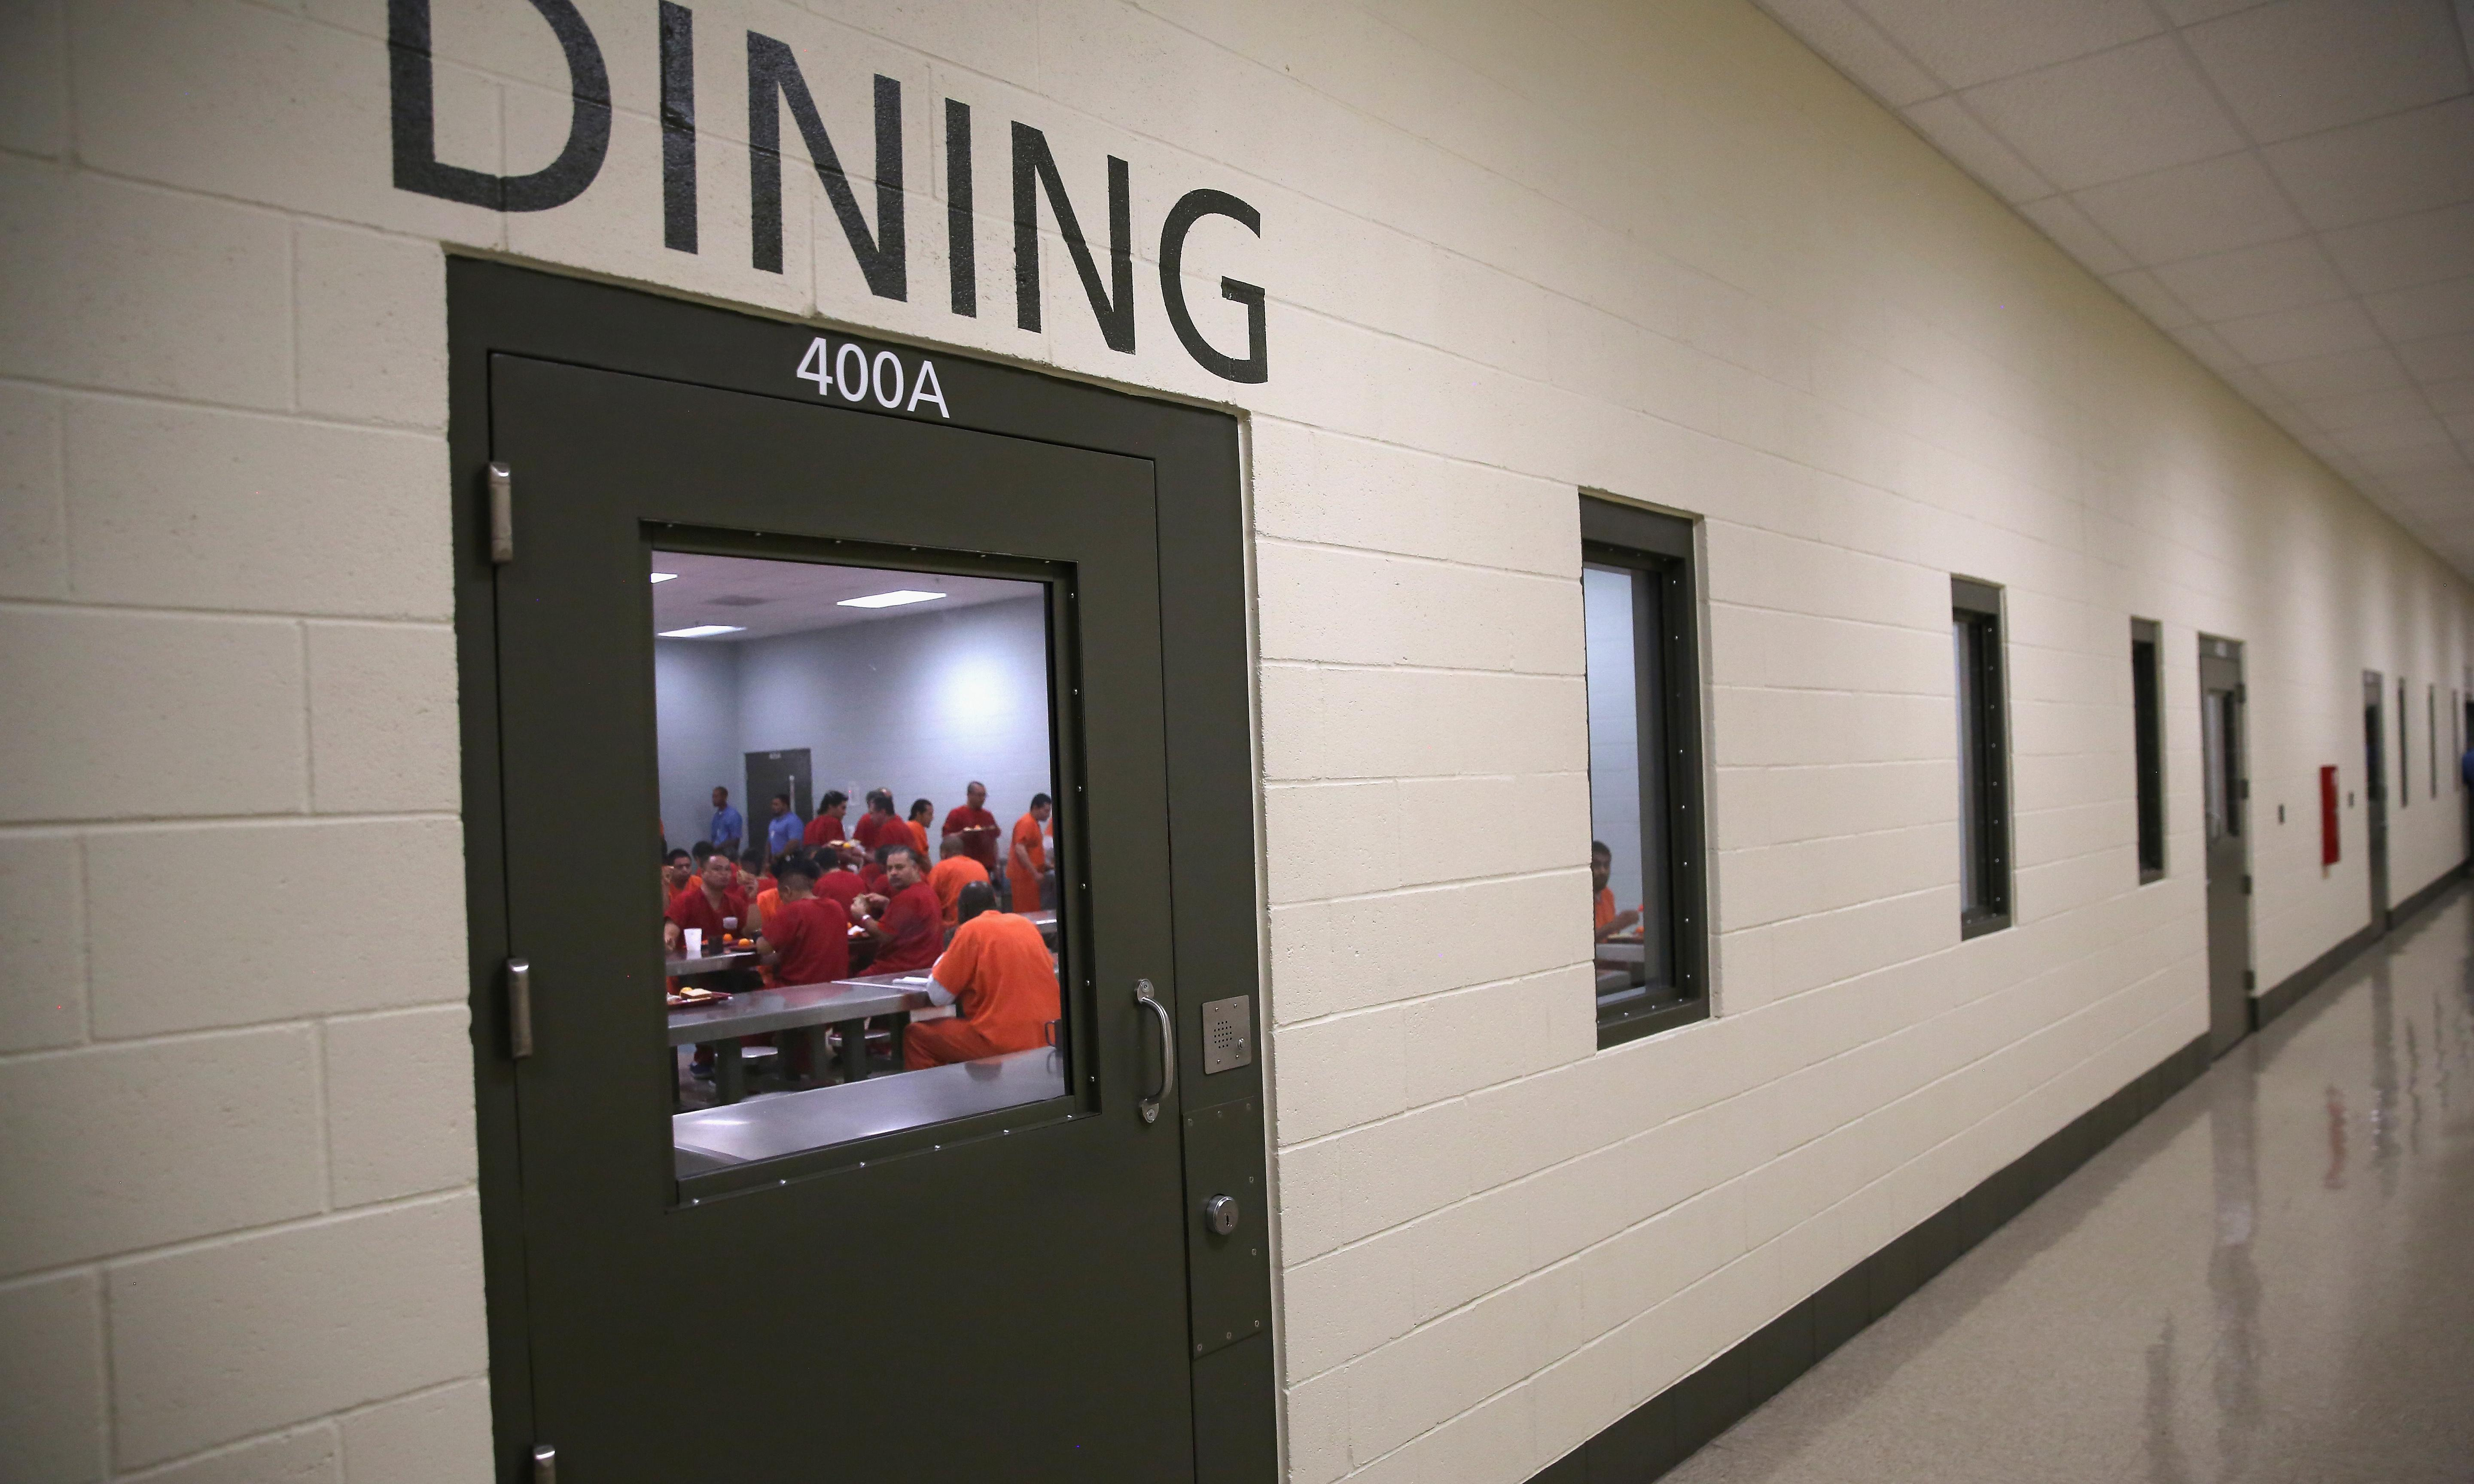 Private prison companies served with lawsuits over using detainee labor